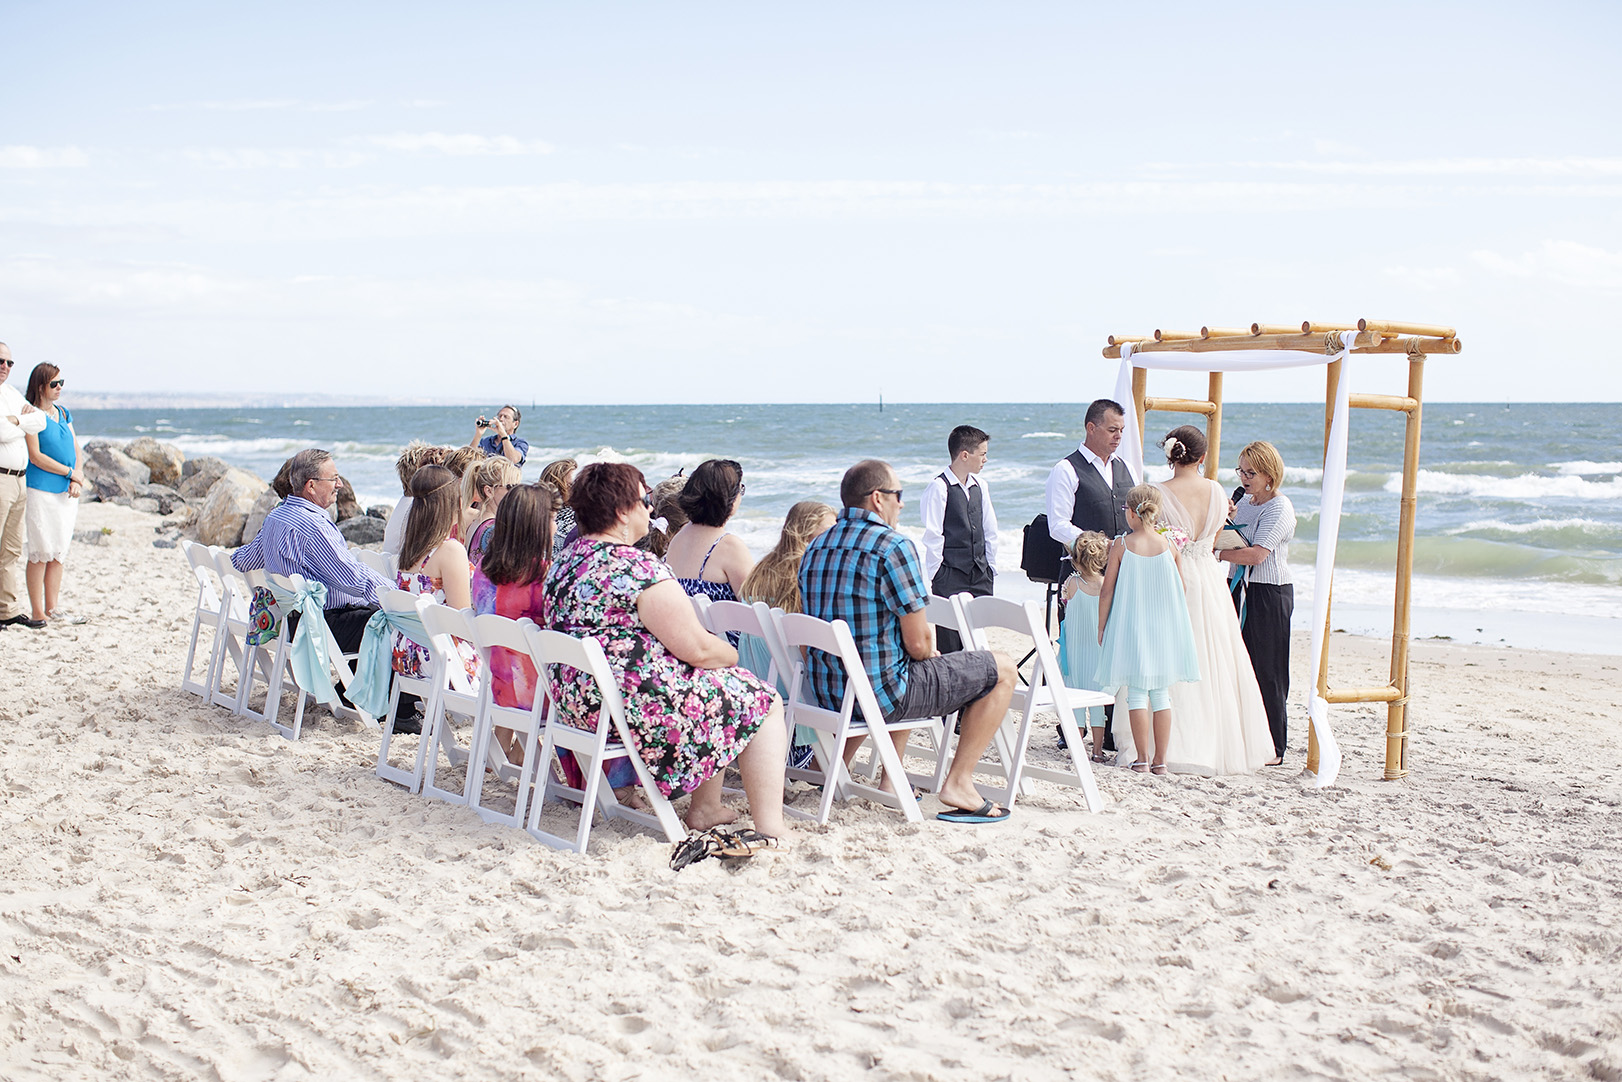 Adelaide Beach Wedding 014.jpg